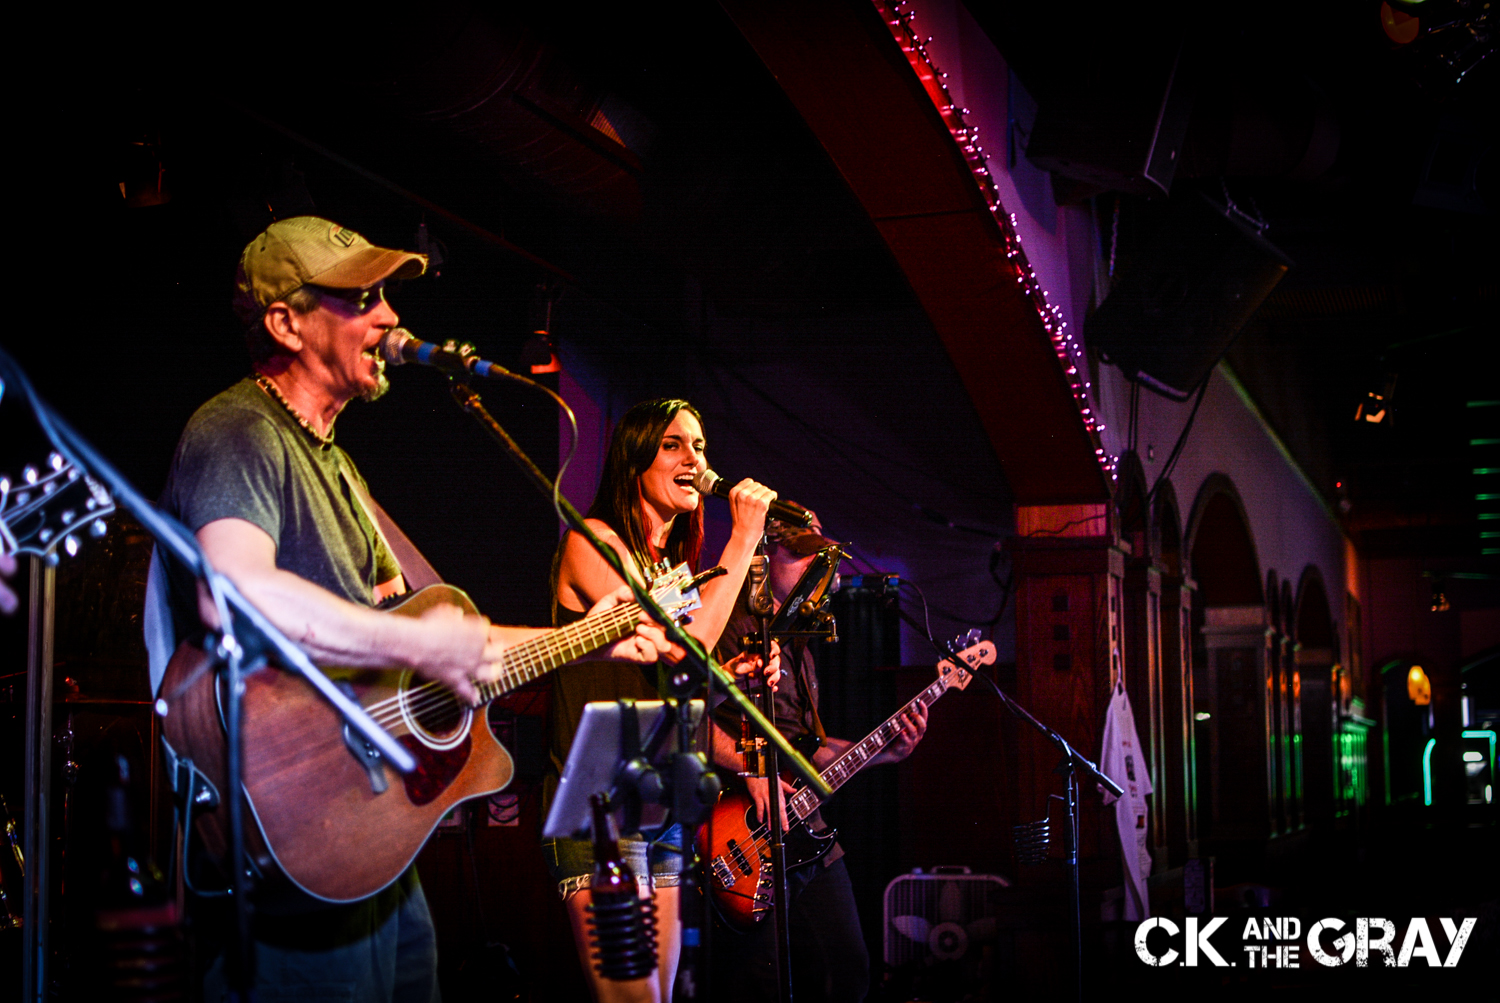 Kris Hachmeister and Chrissy Karl of CK and The Gray performs at Jenny's Southside Tap in Mokena